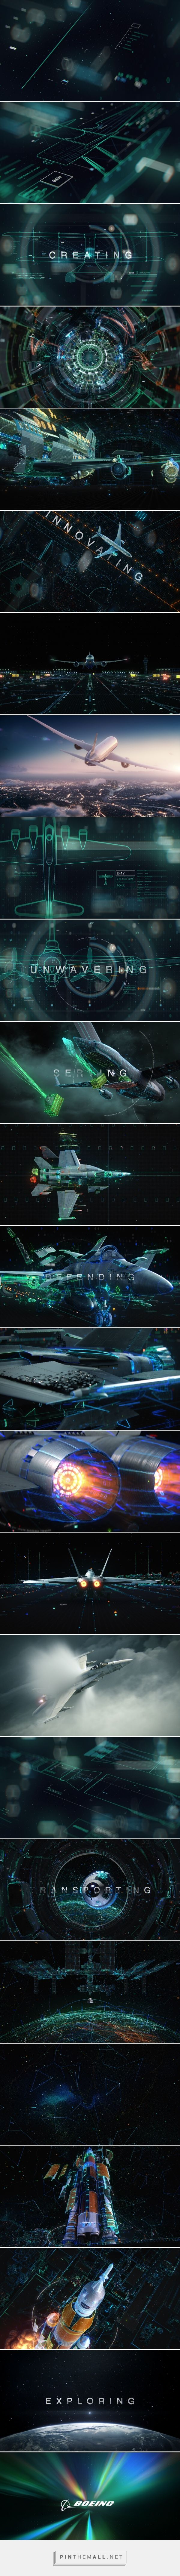 Boeing 100 | Director's Cut on Behance... - a grouped images picture - Pin Them All